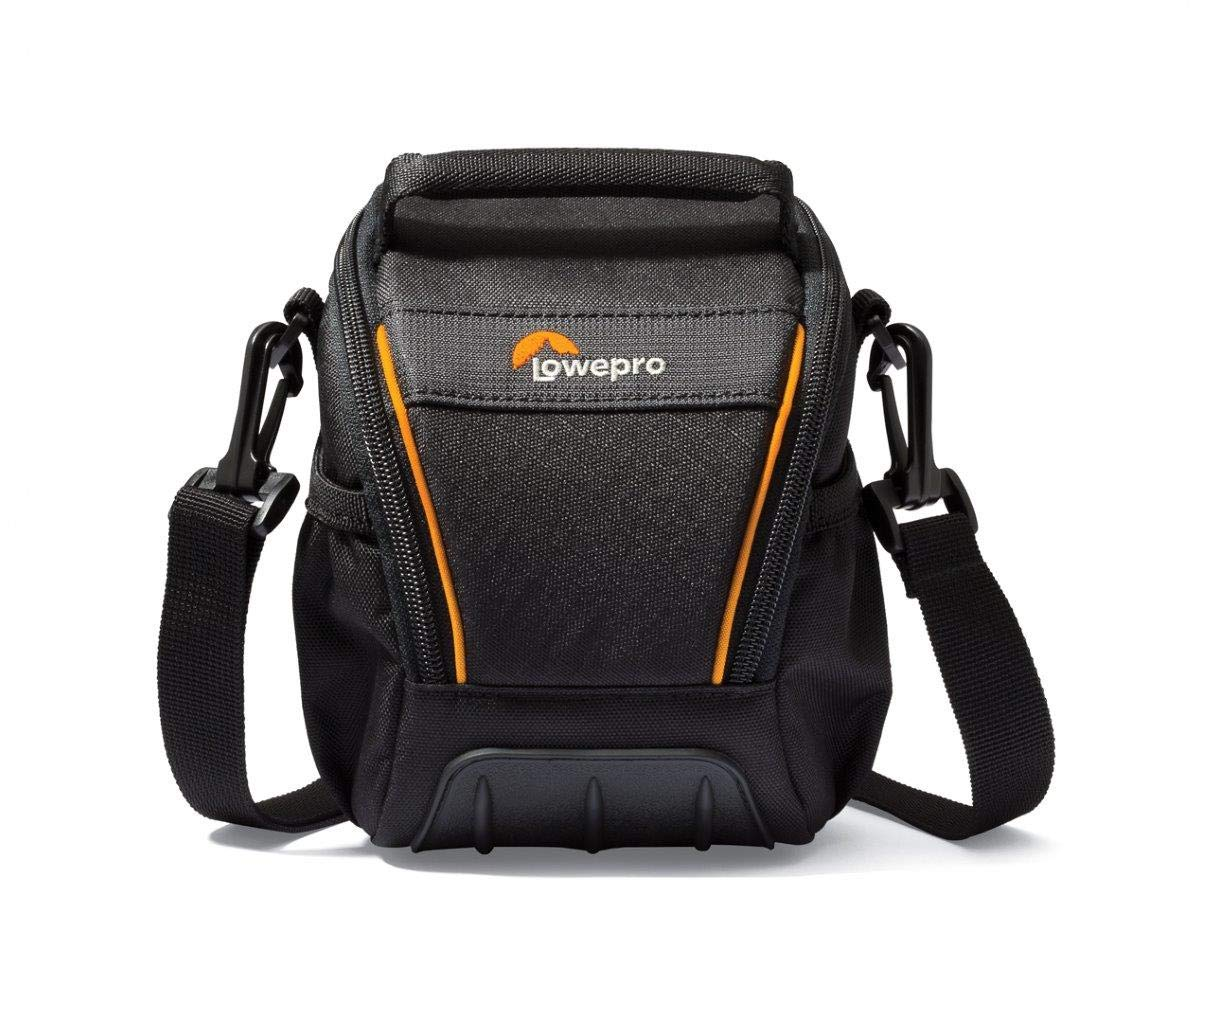 Lowepro Adventura SH 110 II - A Protective and Compact Shoulder Bag for a Camcorder, CSC or Action Video Camera LP36865-0WW